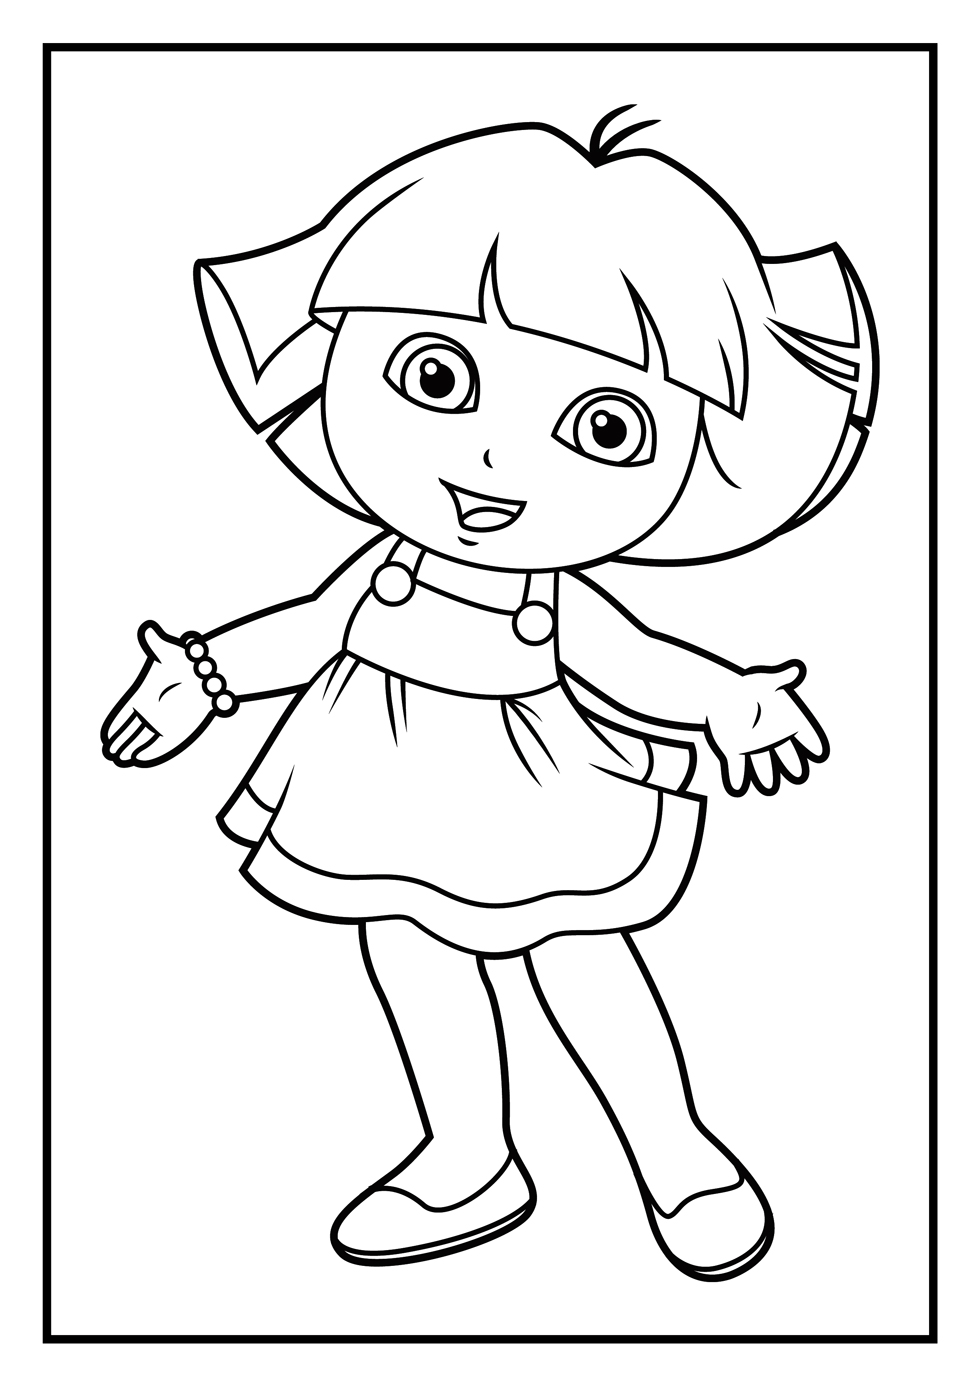 Free coloring pages hamsters - Dora Coloring Pages Diego Coloring Pages On Dora Coloring Games